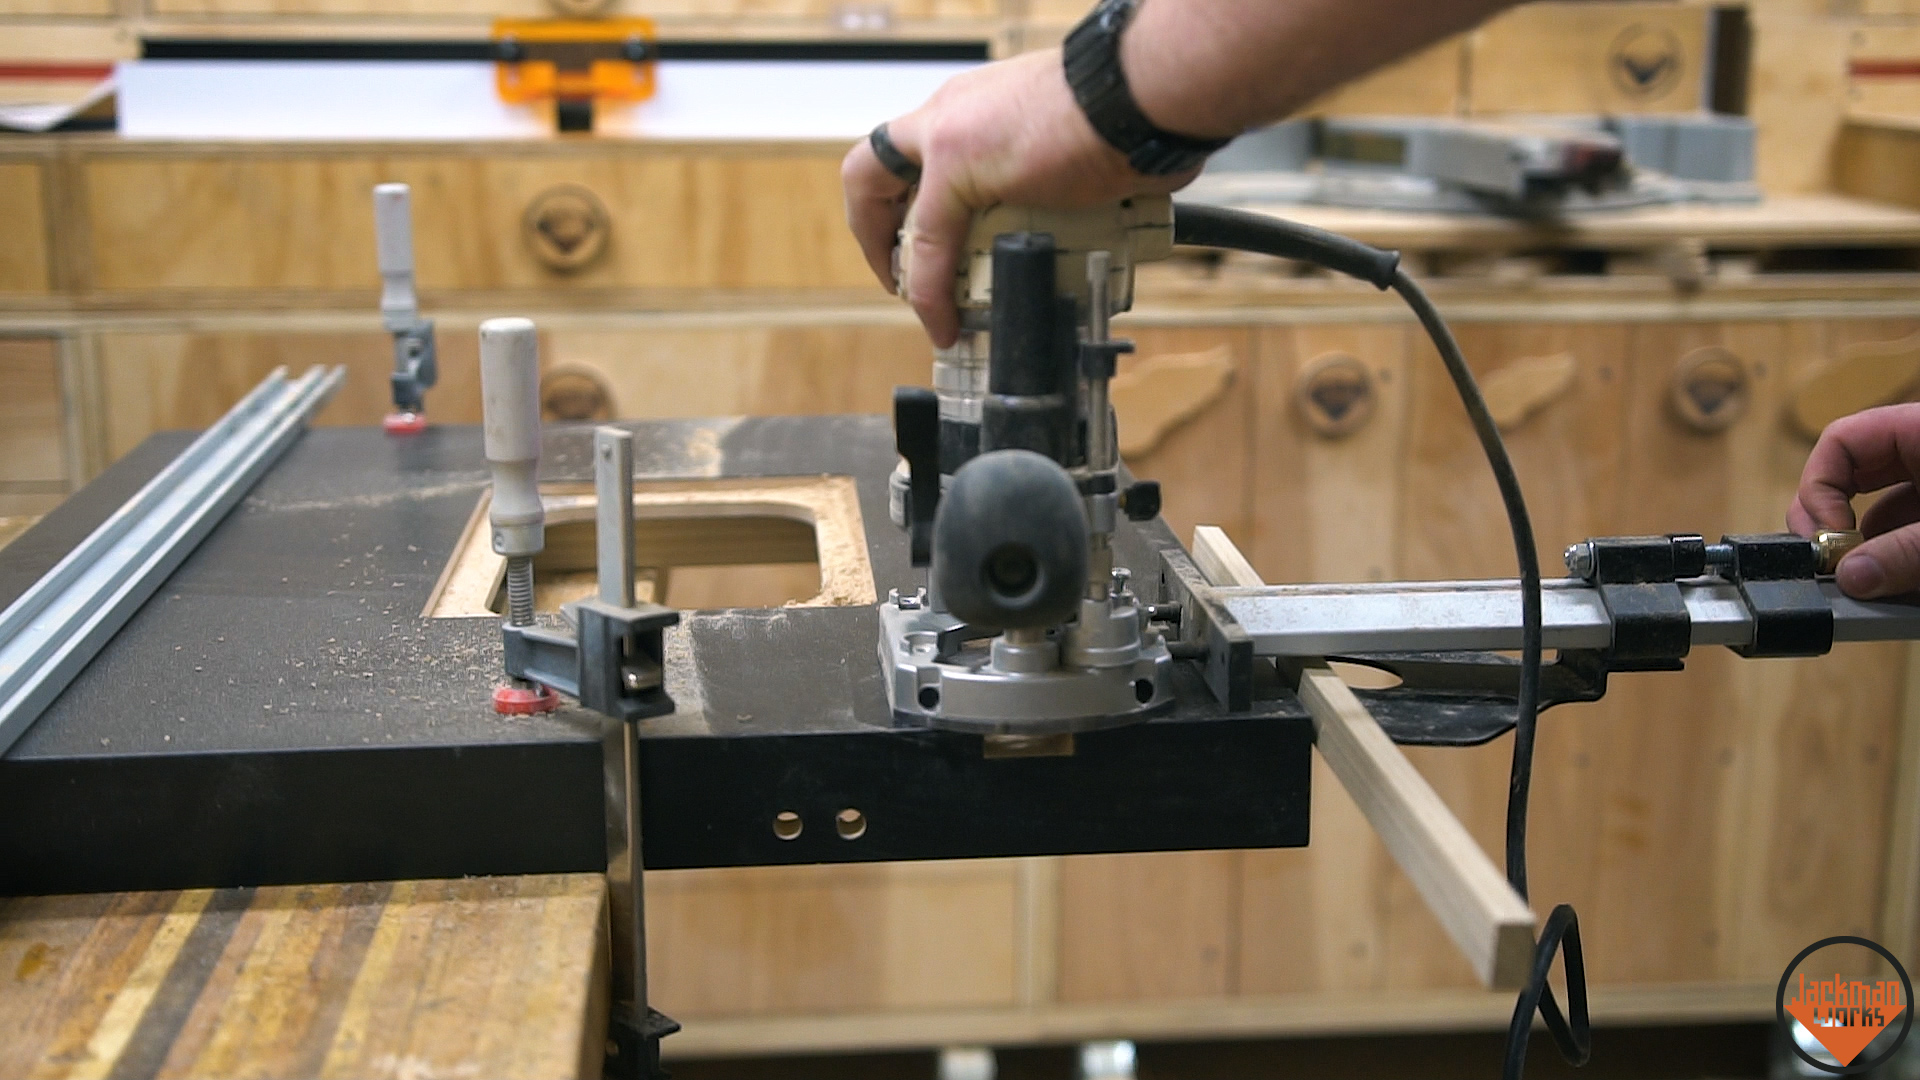 Router table storage cabinet 3 jackman works jackmanjackman worksfence systemrouter tablehow to build a router table woodworkingrouter liftshop storagestorageorganizationworkshop organization greentooth Gallery